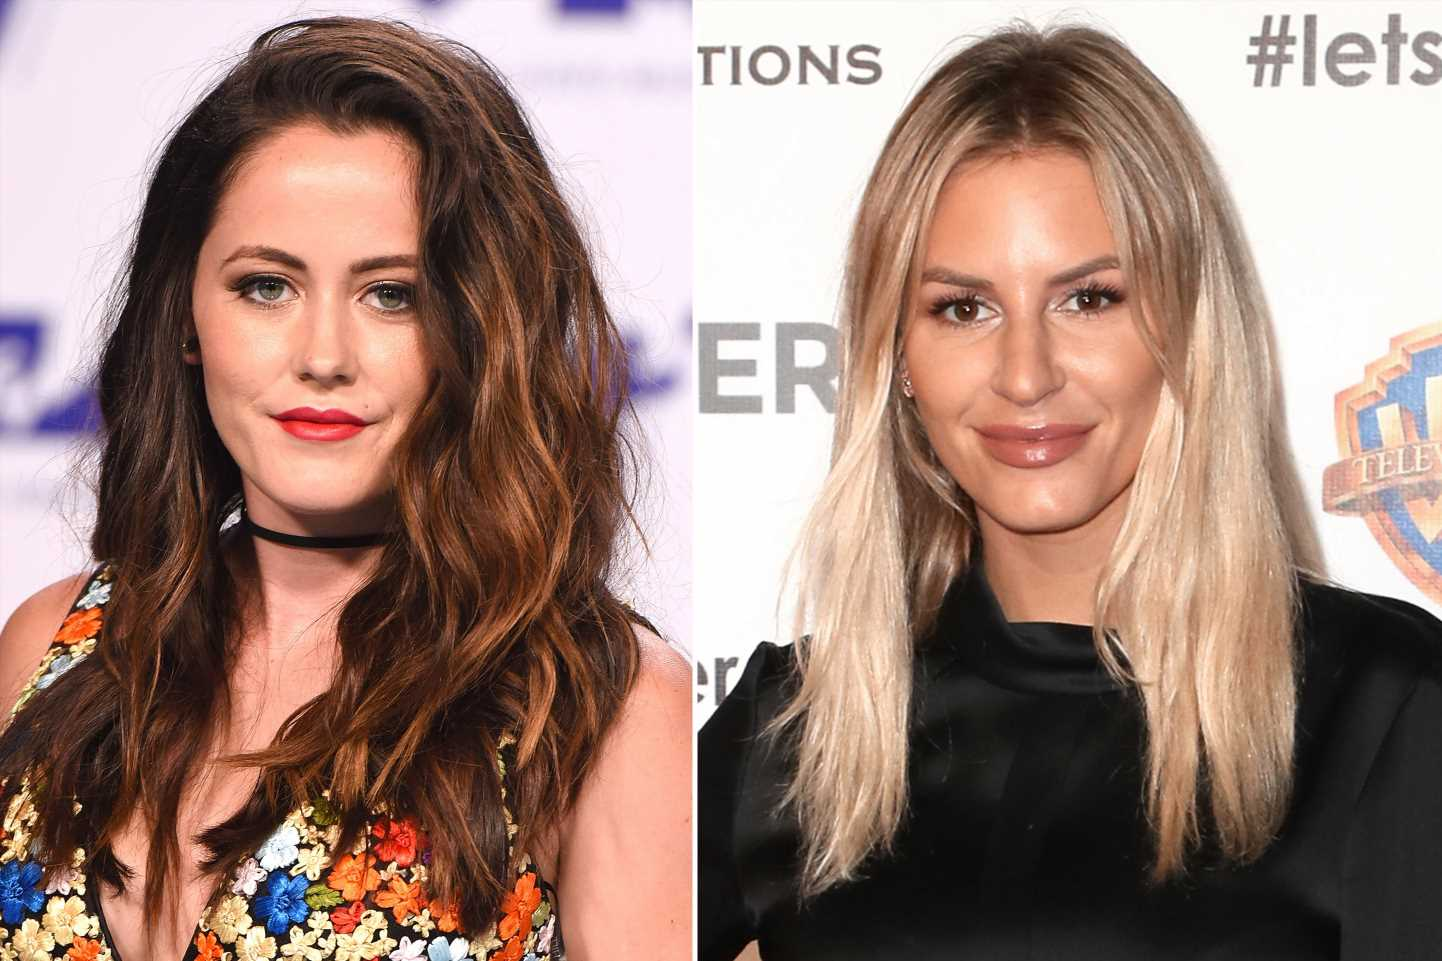 Jenelle Evans slams Morgan Stewart for comments about her dog killing controversy